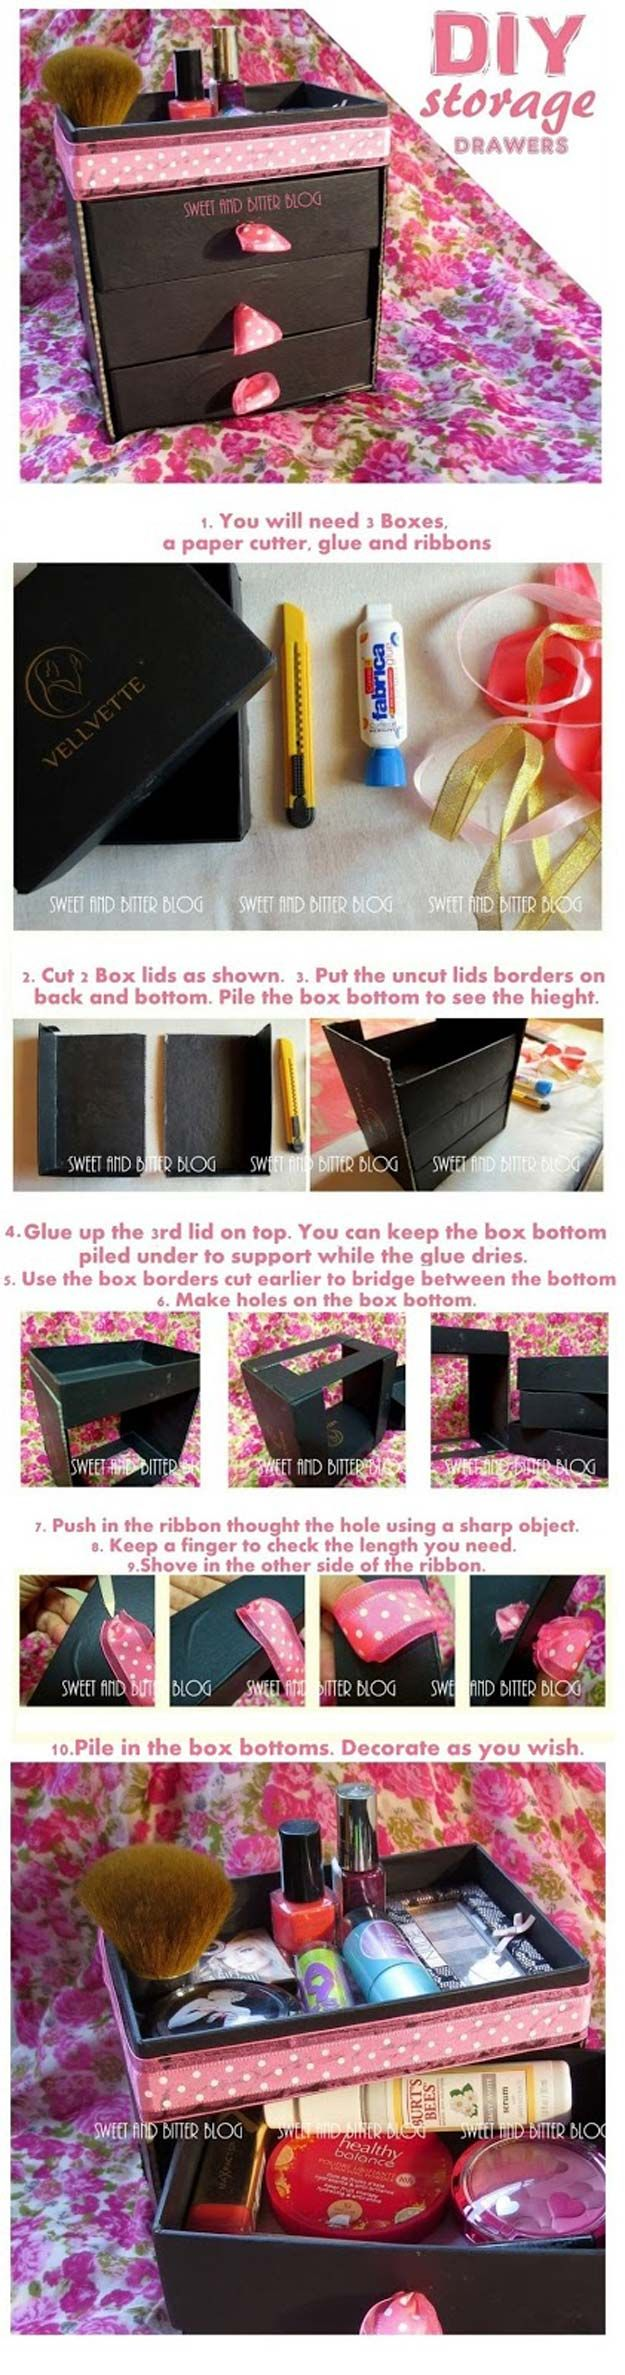 DIY Makeup Storage and Organizing - Stylish Beauty Box Makeup Organizer - Awesome Ideas and Dollar Stores Hacks for Some Seriously Great Organizers For Small Spaces - Box and Vanity Ideas as well as Easy Ideas for Jars and Drawers, Cheap Wall Shoebox Containers and Quick Holders with Cardboard - thegoddess.com/DIY-Makeup-Storage